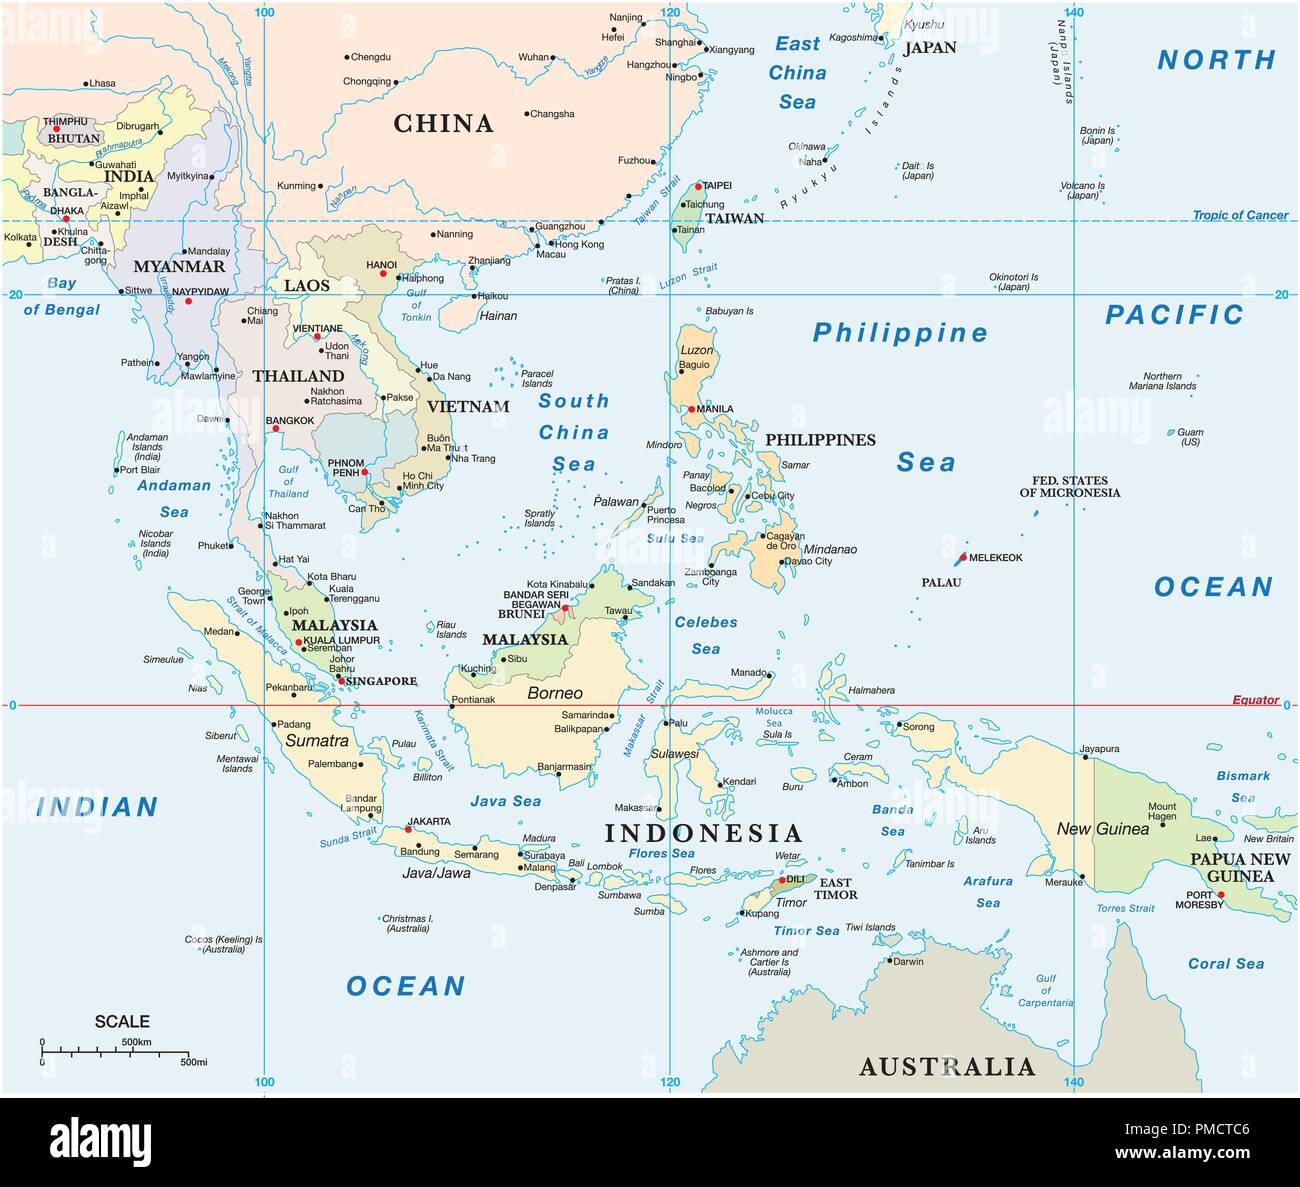 southeast asia vector map with coordinates and scale. - Stock Image